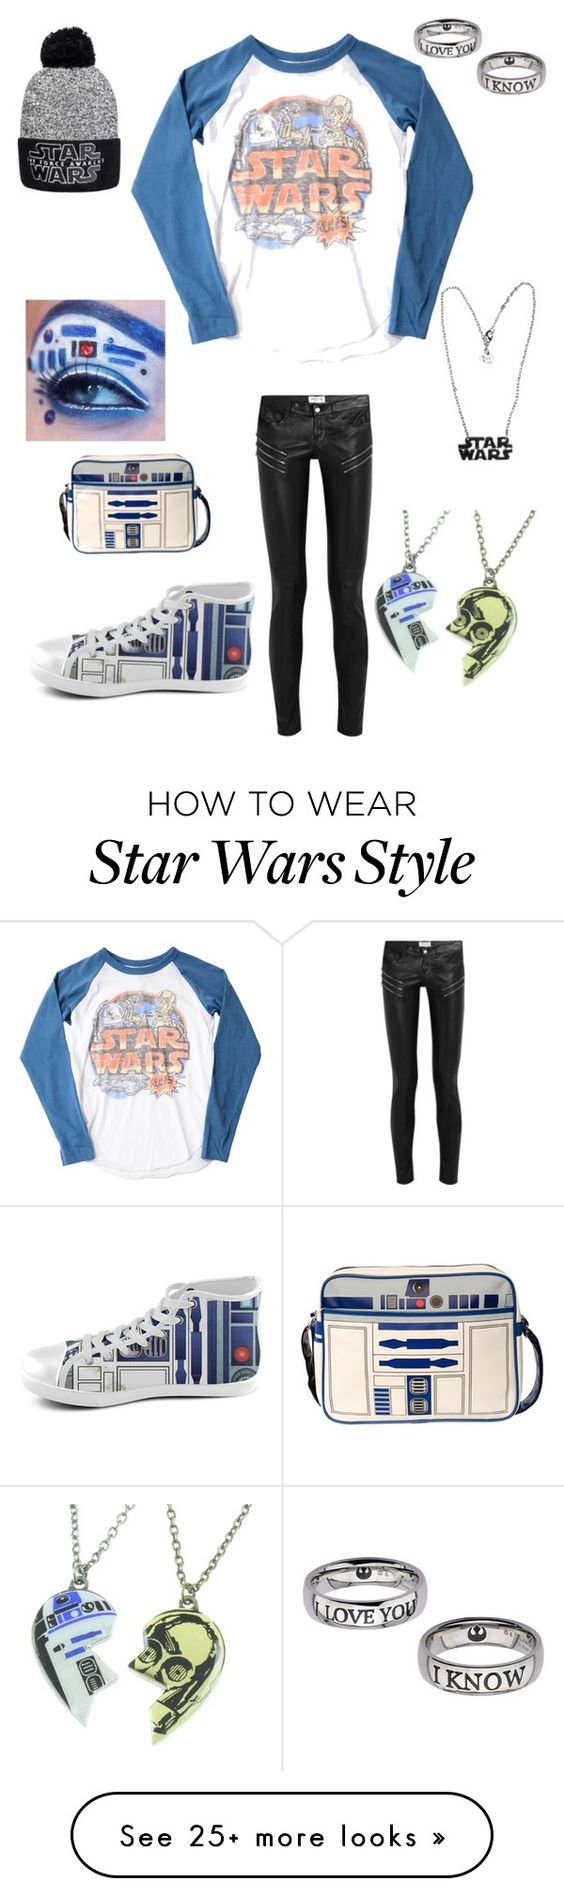 """Star Wars!!!!!! ❤️☺️"" by dreamturtlegirl on Polyvore featuring Junk Food Clothing, Yves Saint Laurent and R2"